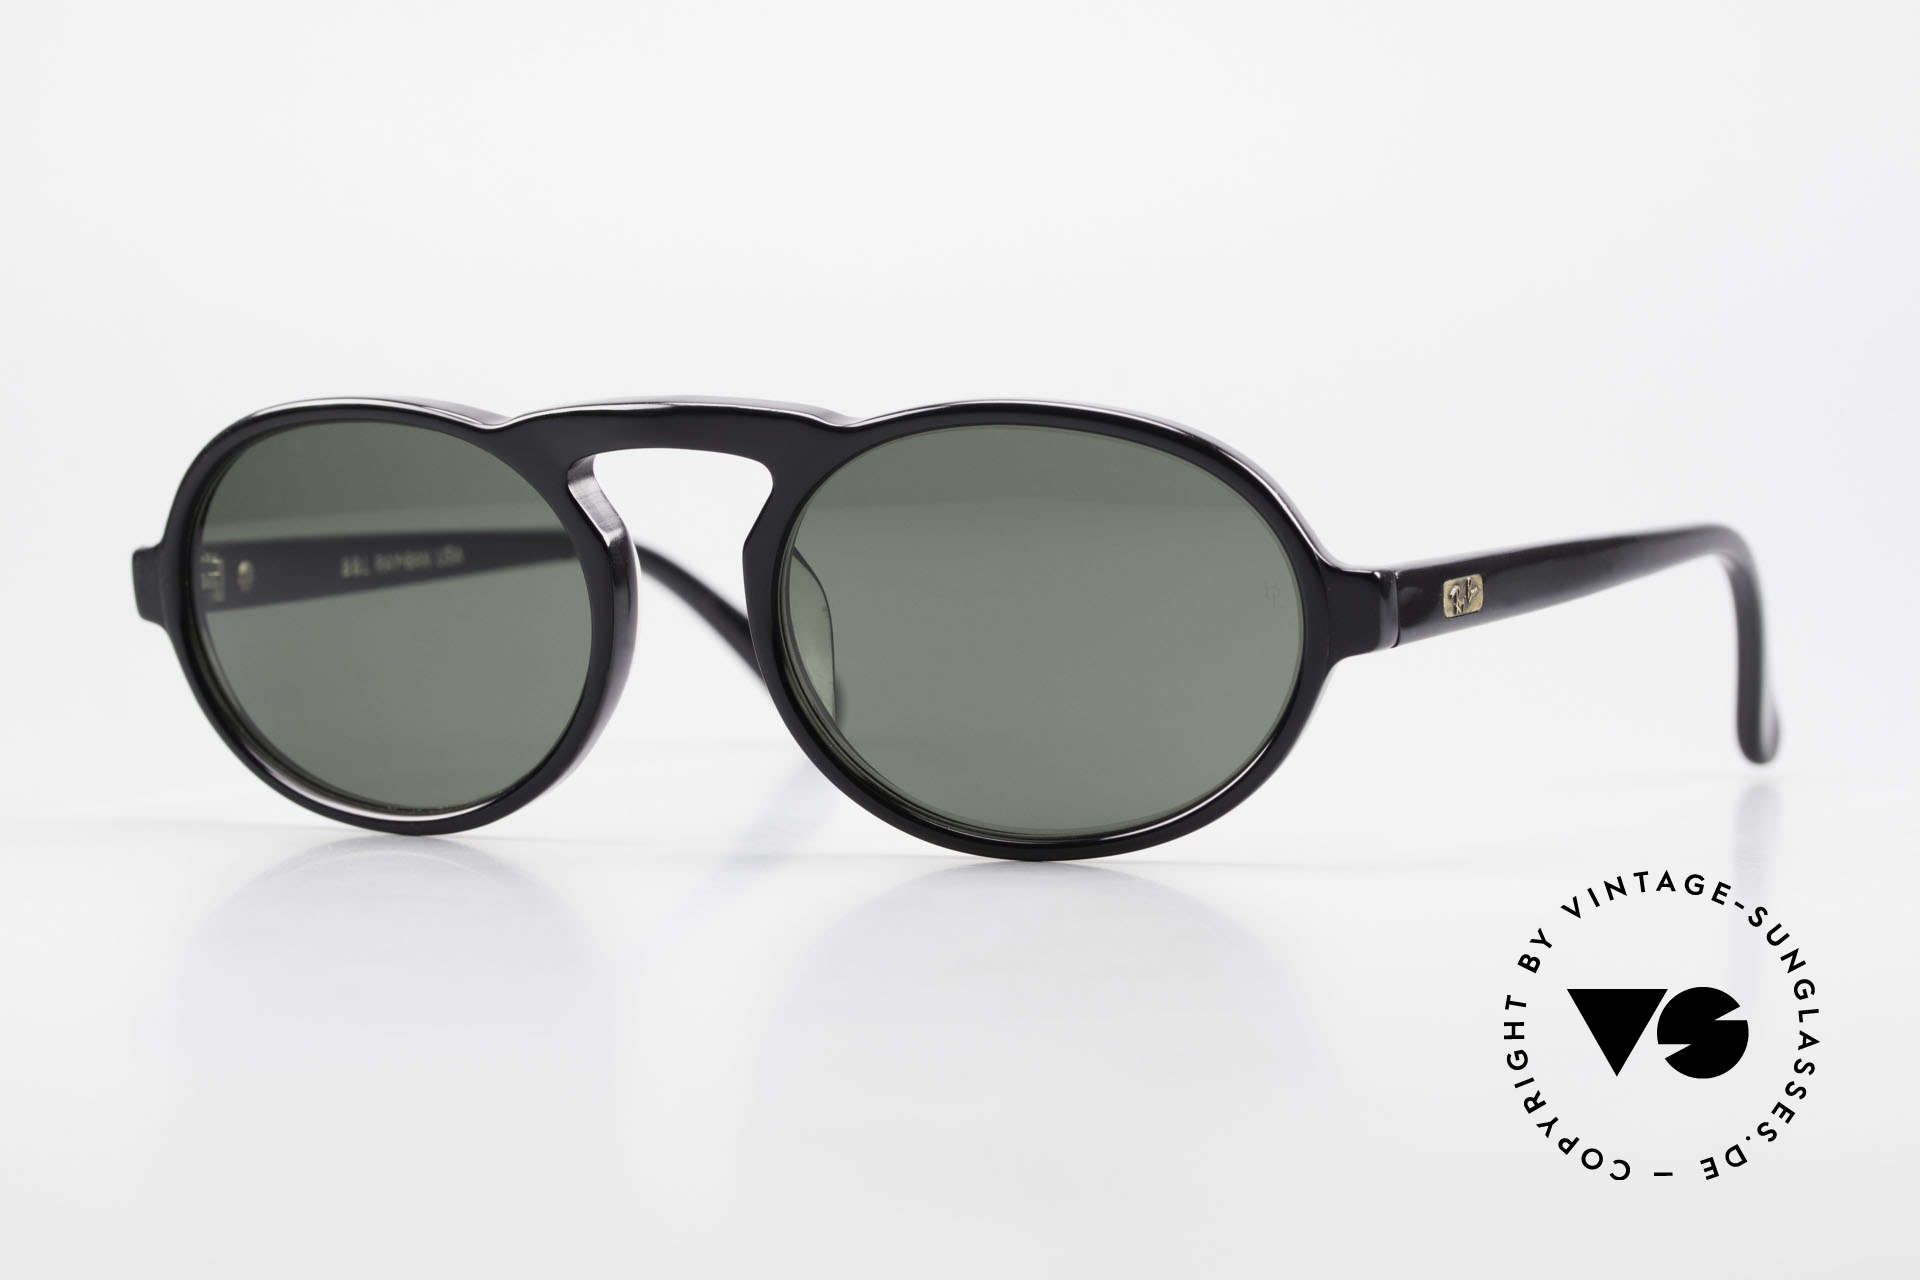 Ray Ban Gatsby Style 3 Old Oval USA Ray-Ban Shades, rare oval Ray Ban sunglasses (unisex design), Made for Men and Women